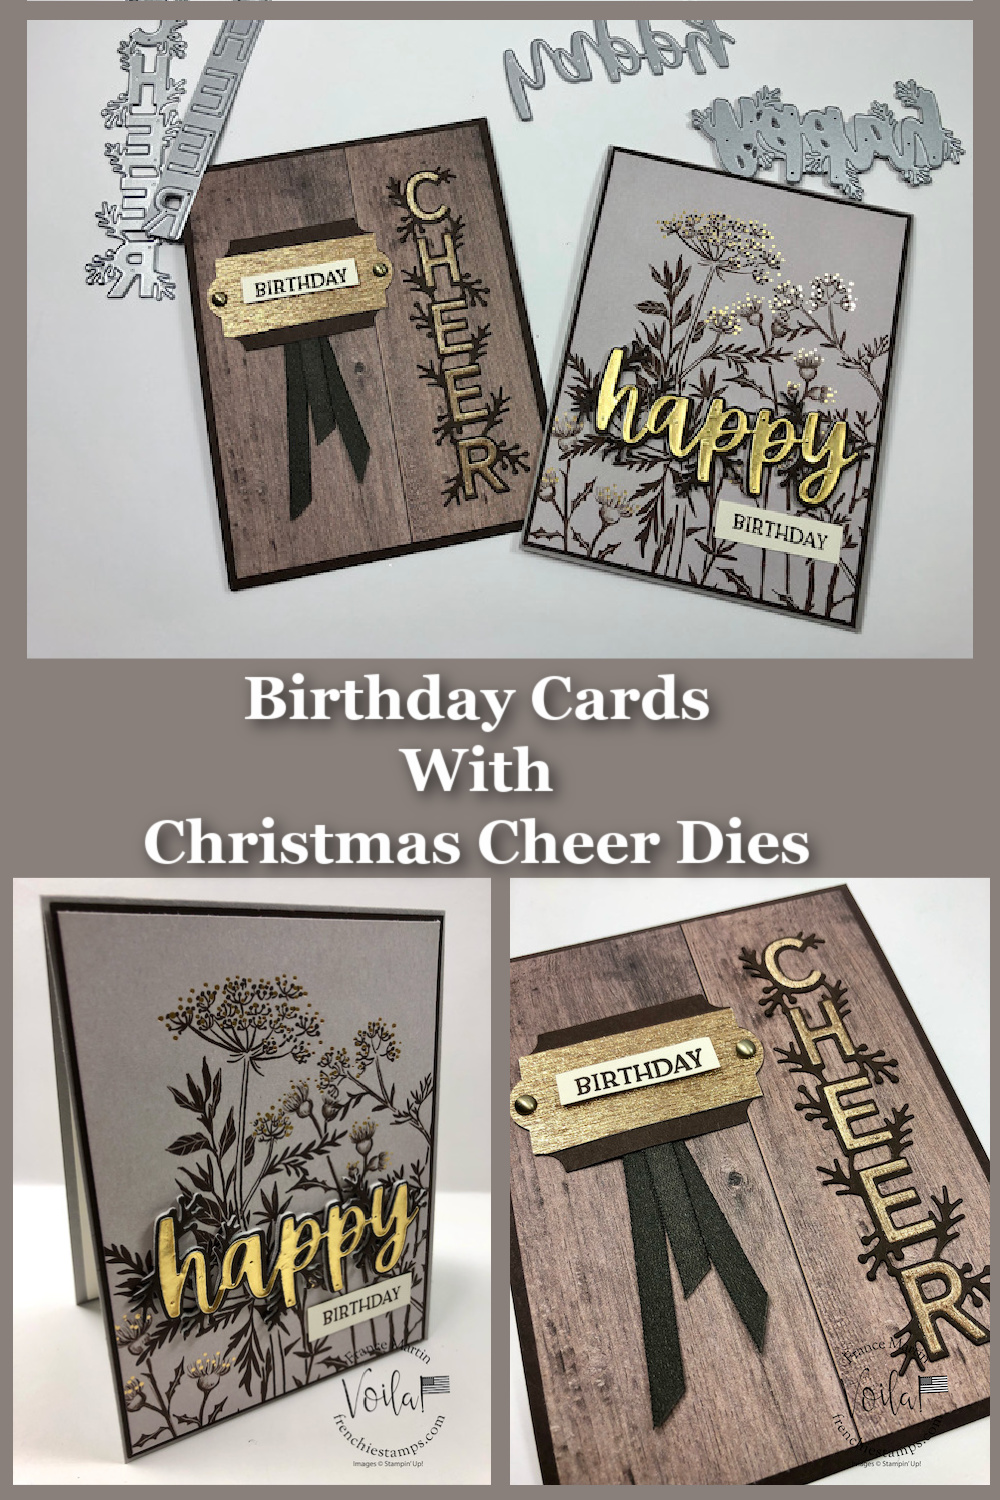 Birthday Cards with Christmas Cheer Dies